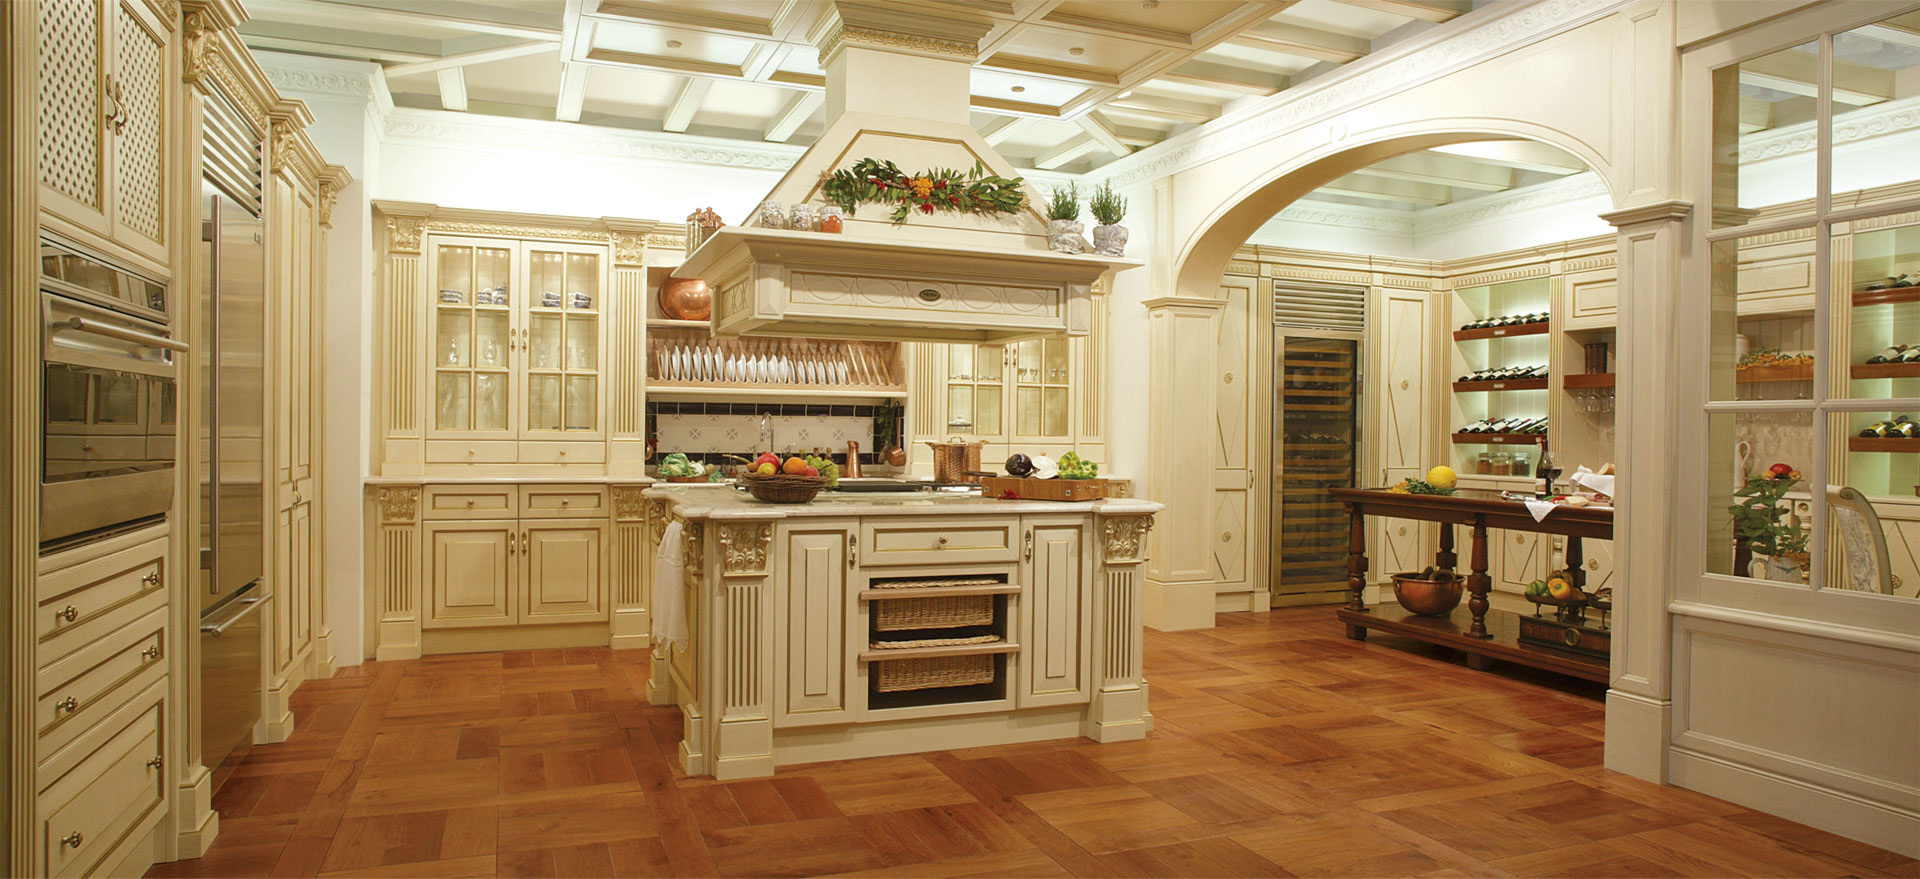 Royal Luxury a luxury classic style kitchen